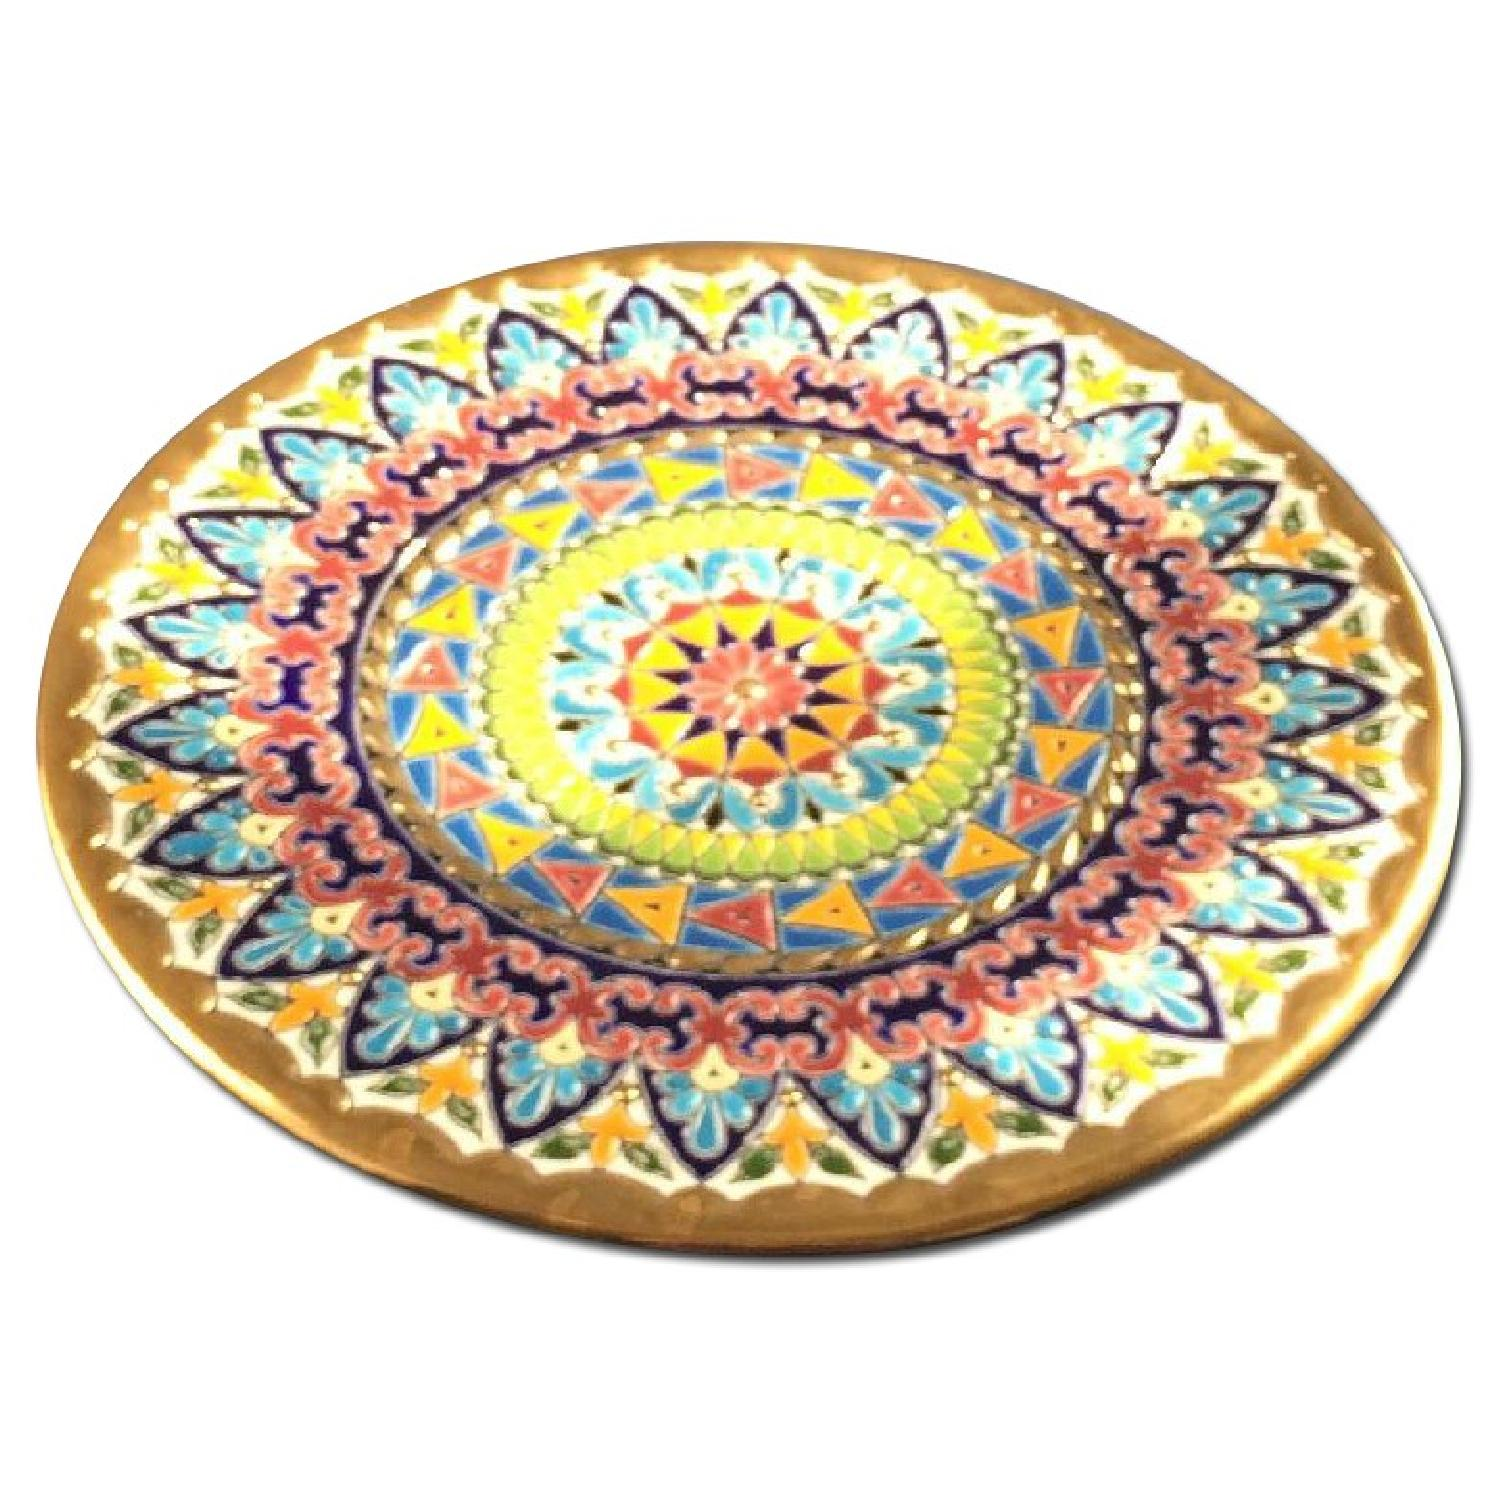 Artisanal Hand-Crafted Plate from Barcelona - image-0